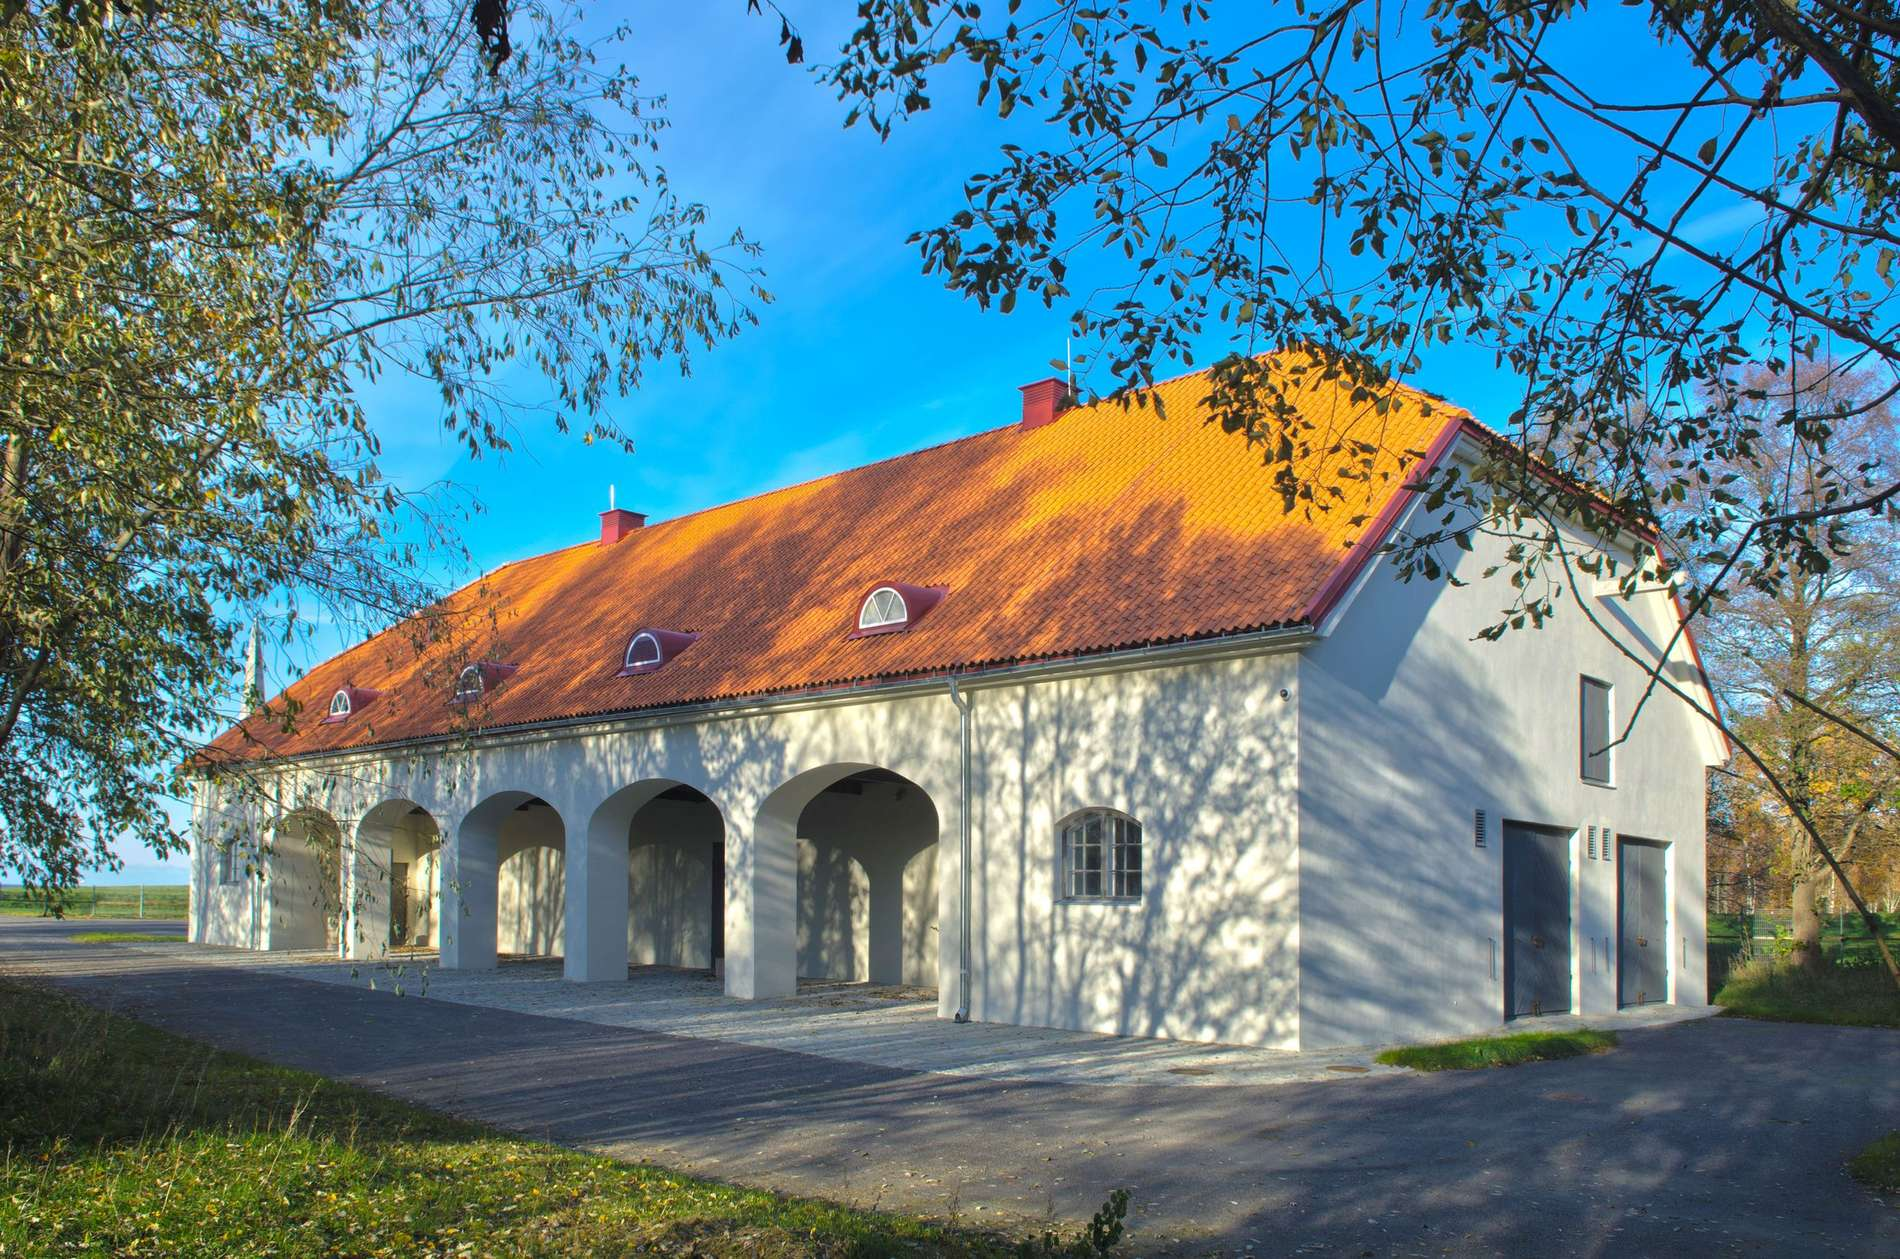 External view of the Maarjamäe Stables - Estonian History Museum in Tallinn, Estonia.